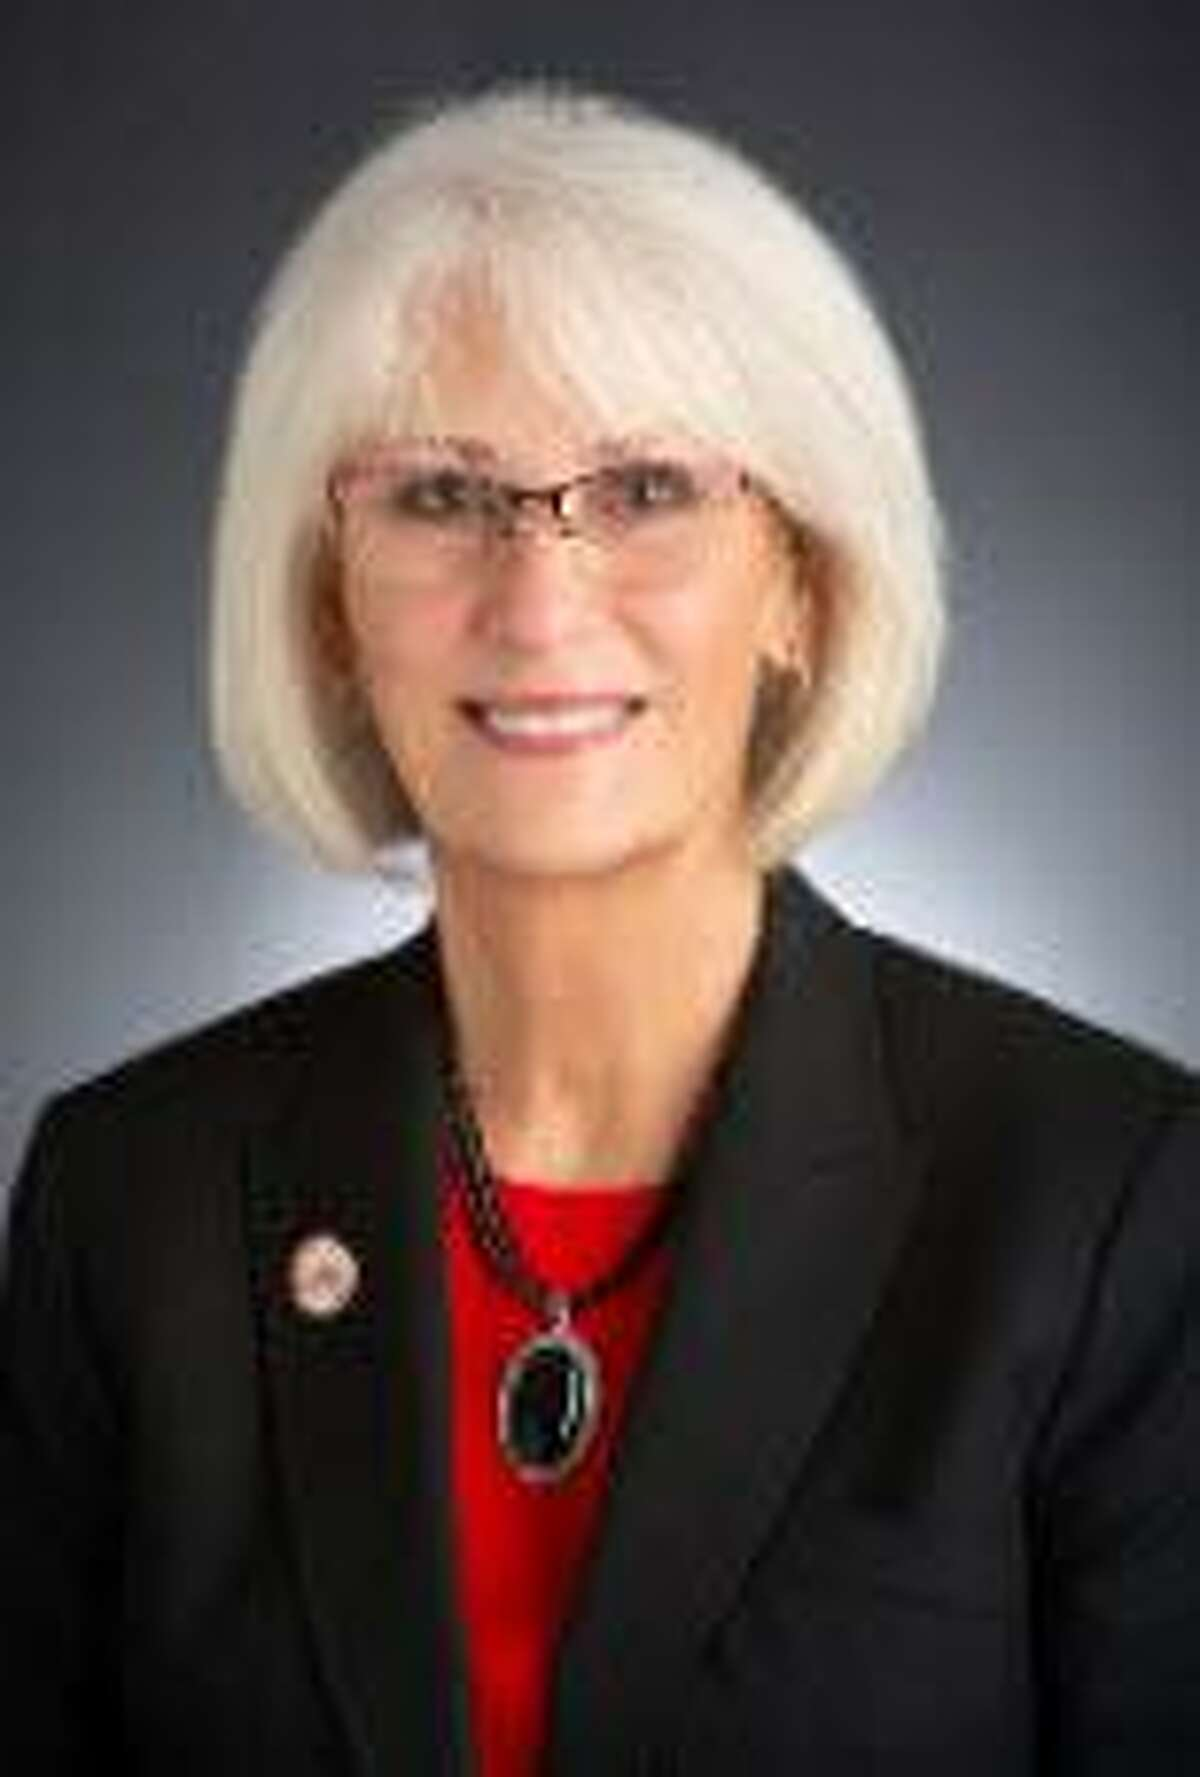 Janet Corte is Ward A councilwoman on the Katy City Council.